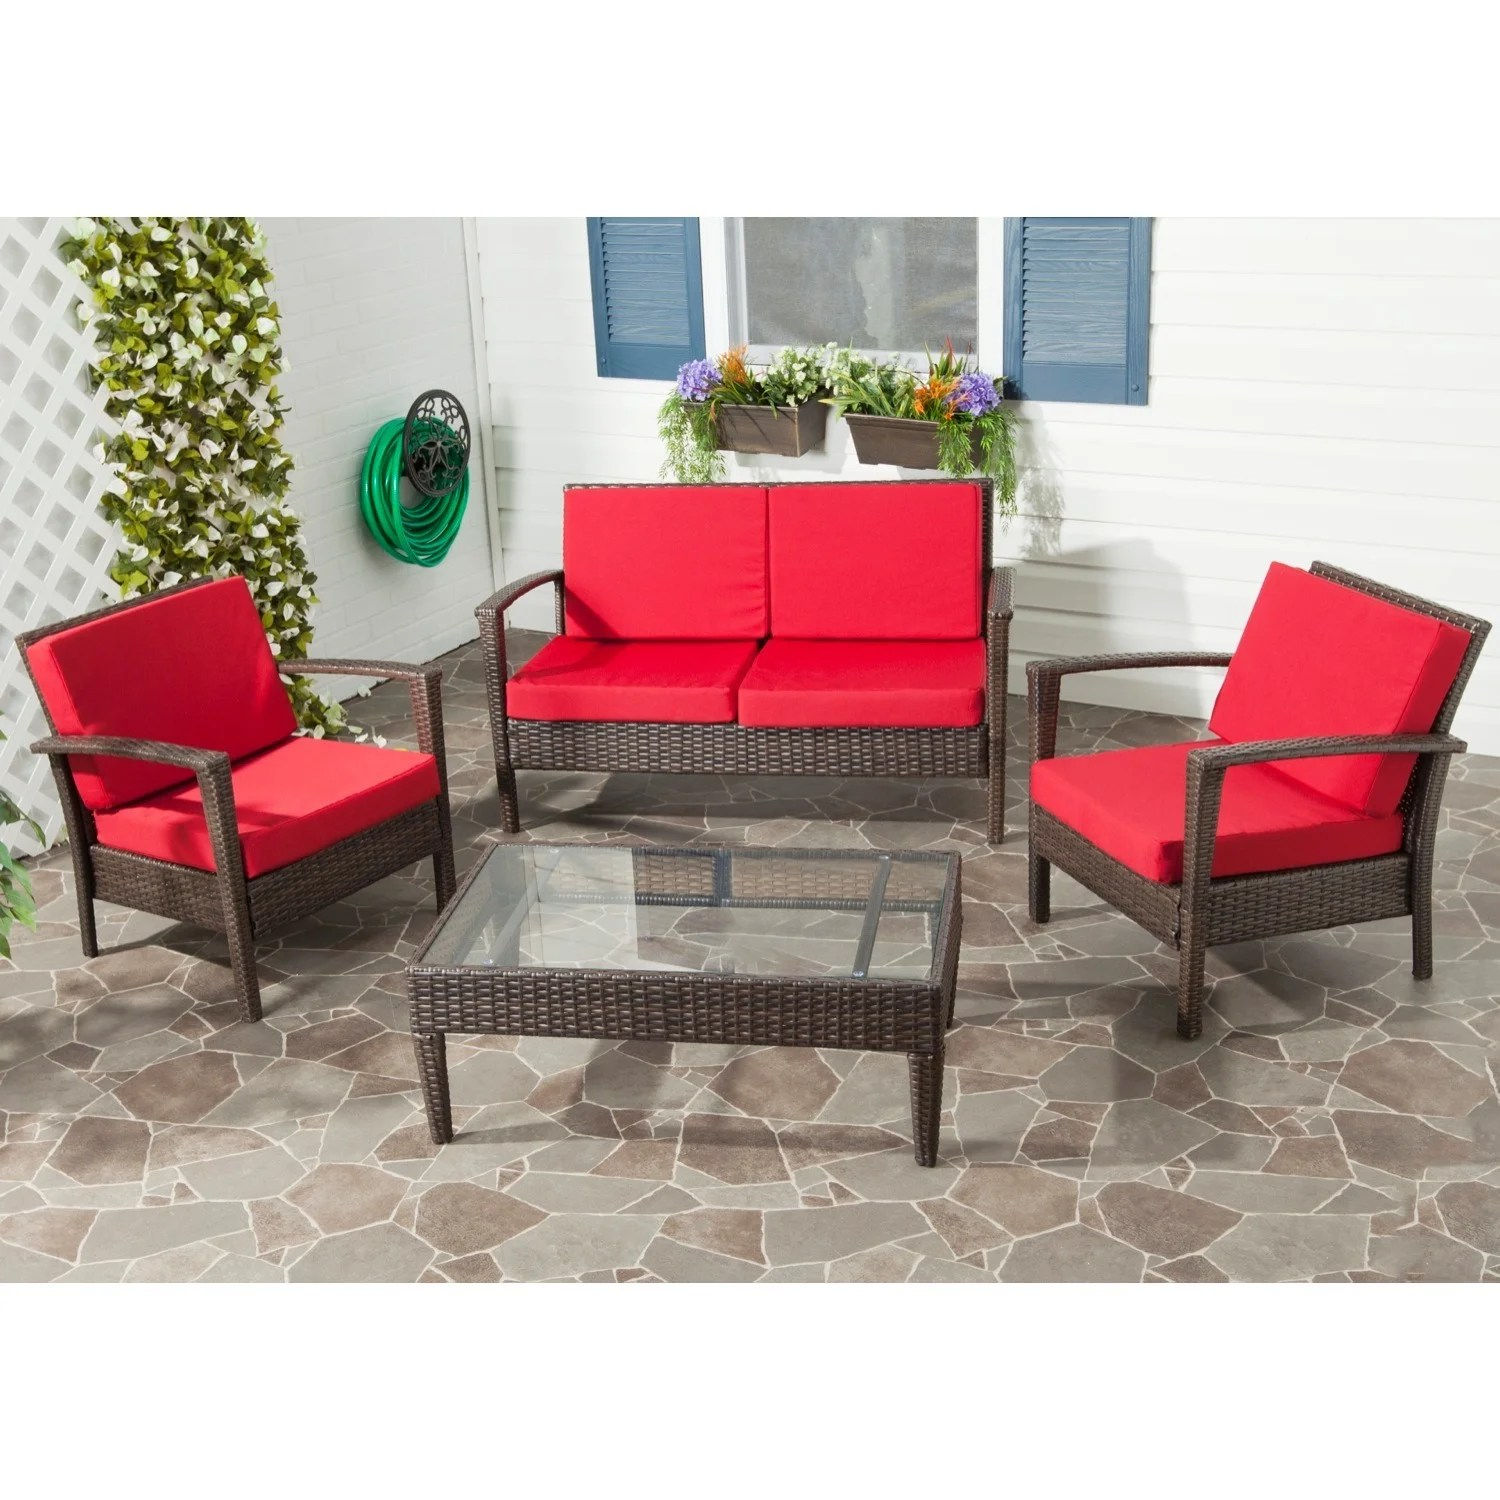 Red Patio Chairs Safavieh Outdoor Living Brown Pe Wicker Red Cushion Glass Top 4 Piece Patio Set